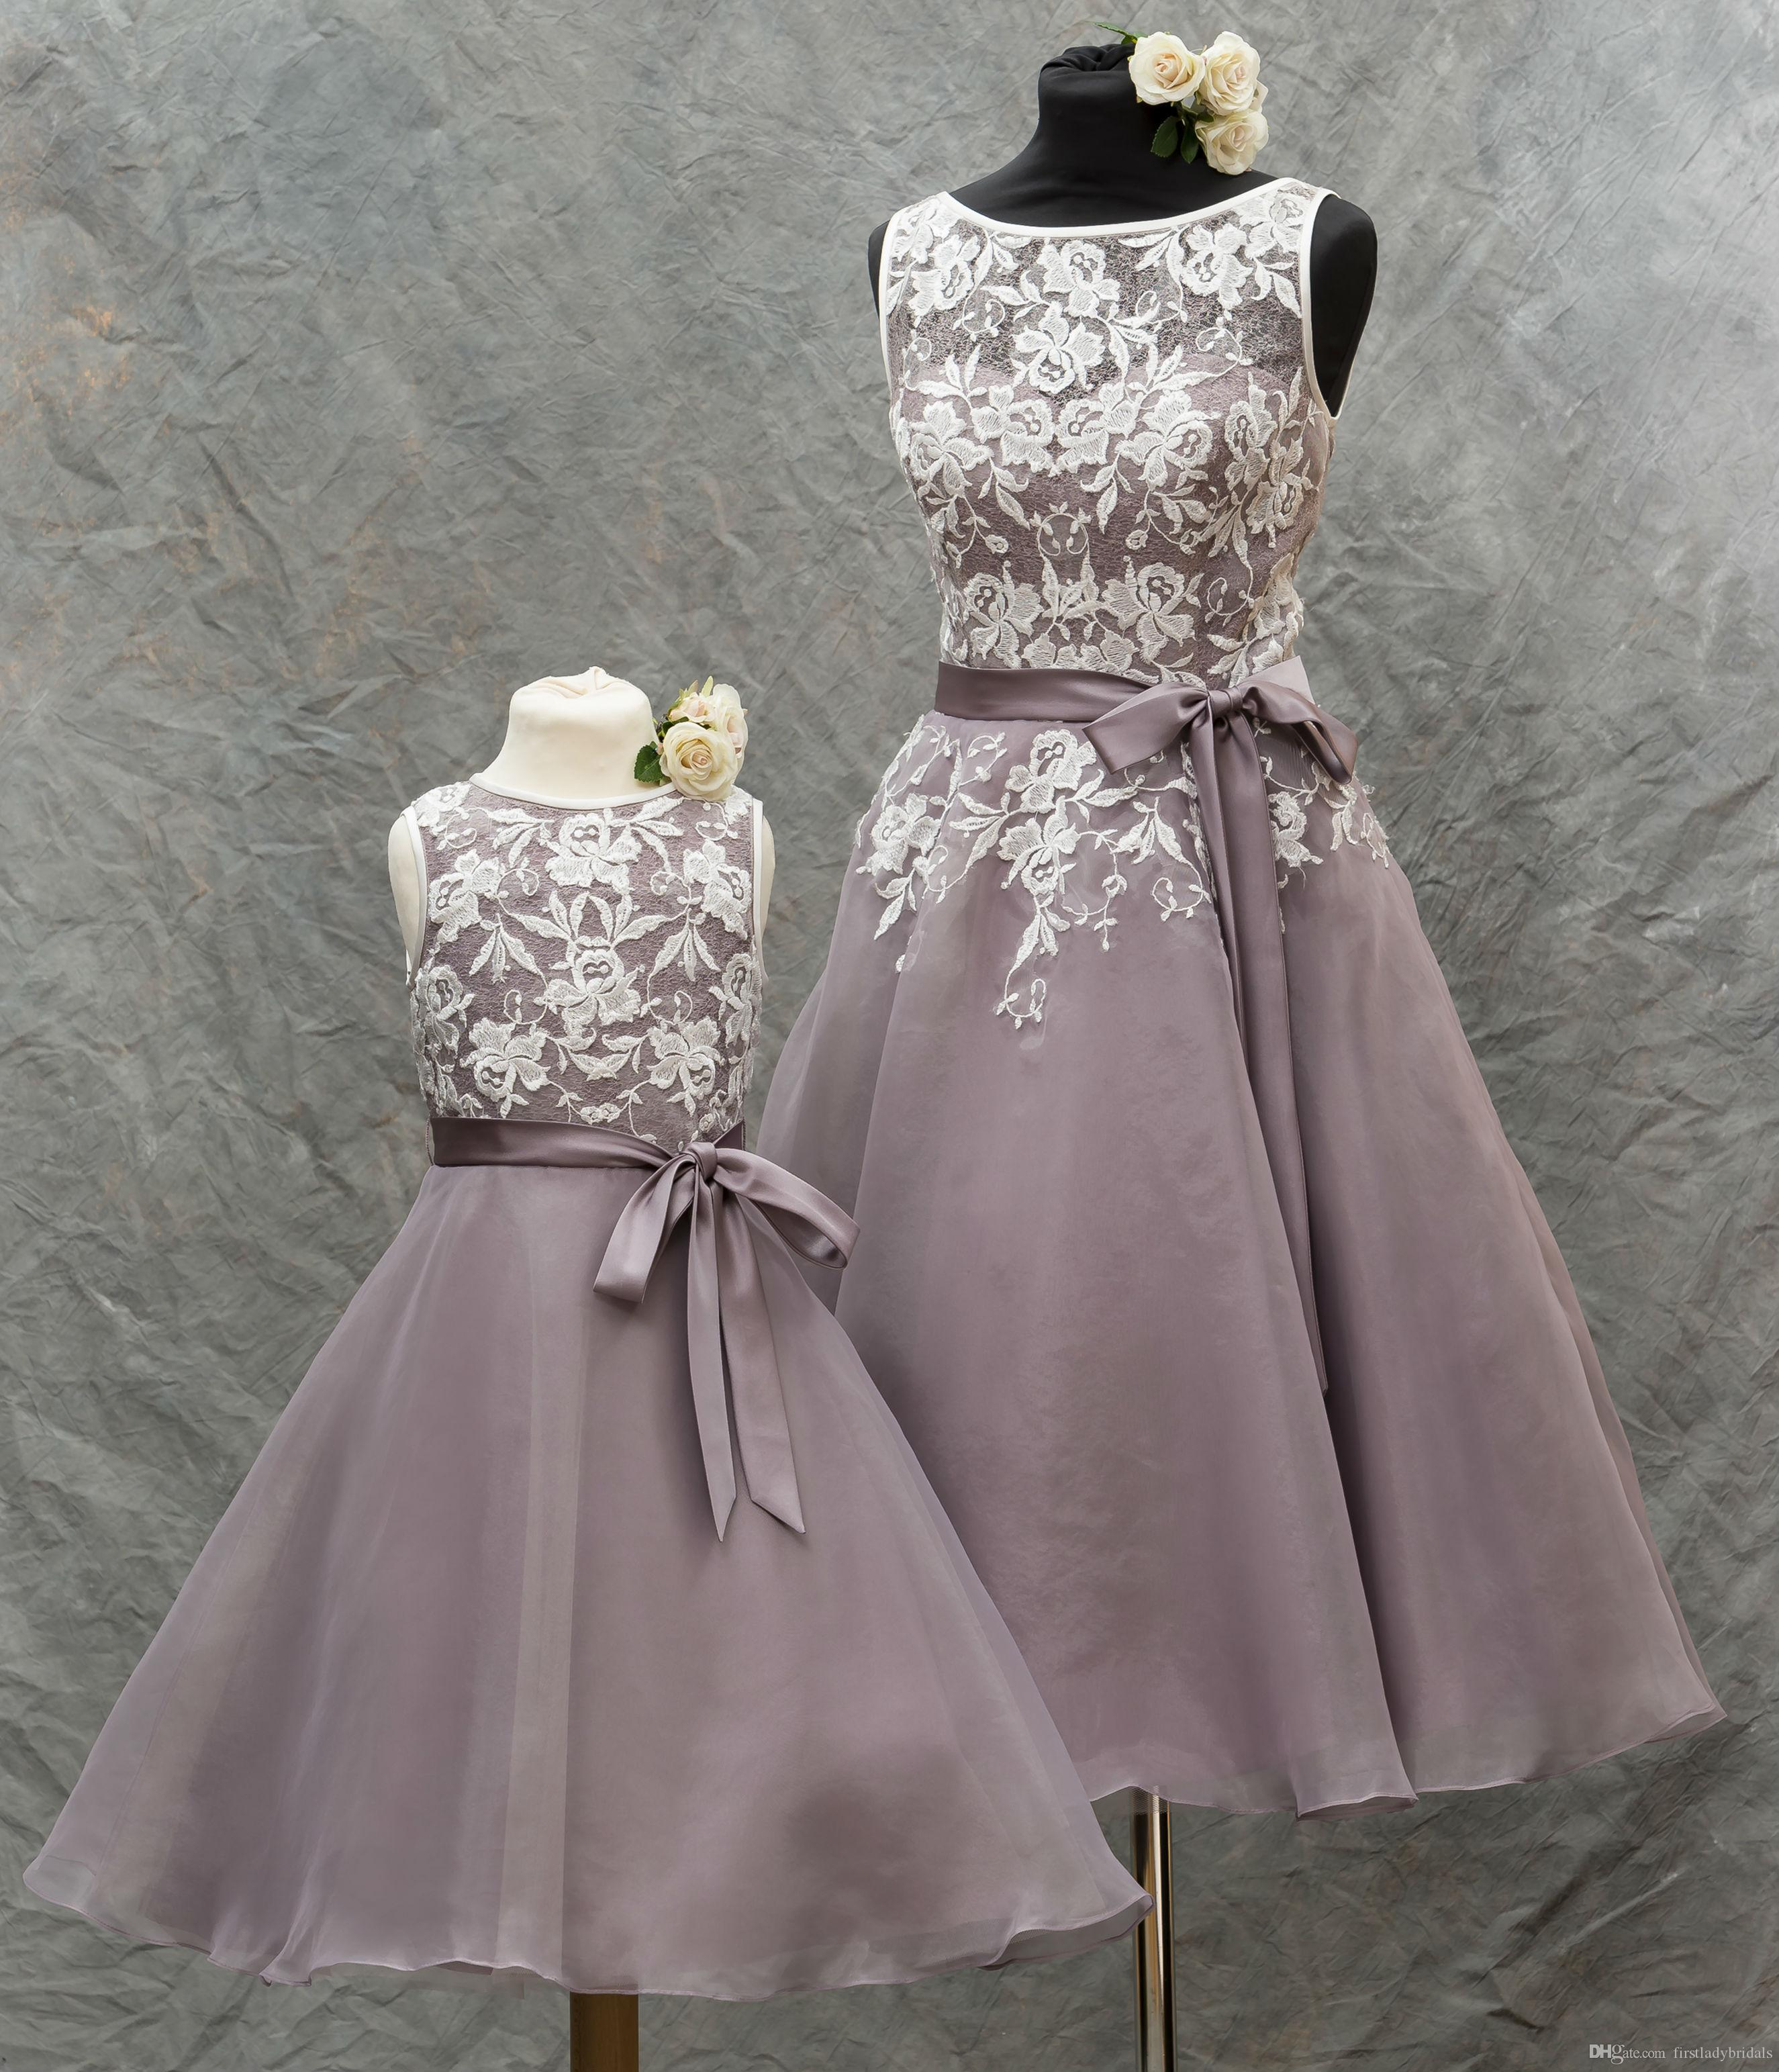 Cheap tea length bridesmaid dresses 2016 lace appliques sheer tea length bridesmaid dresses 2016 lace appliques sheer bateau neck lavender organza wedding party gowns with sash cheap free shipping ombrellifo Images